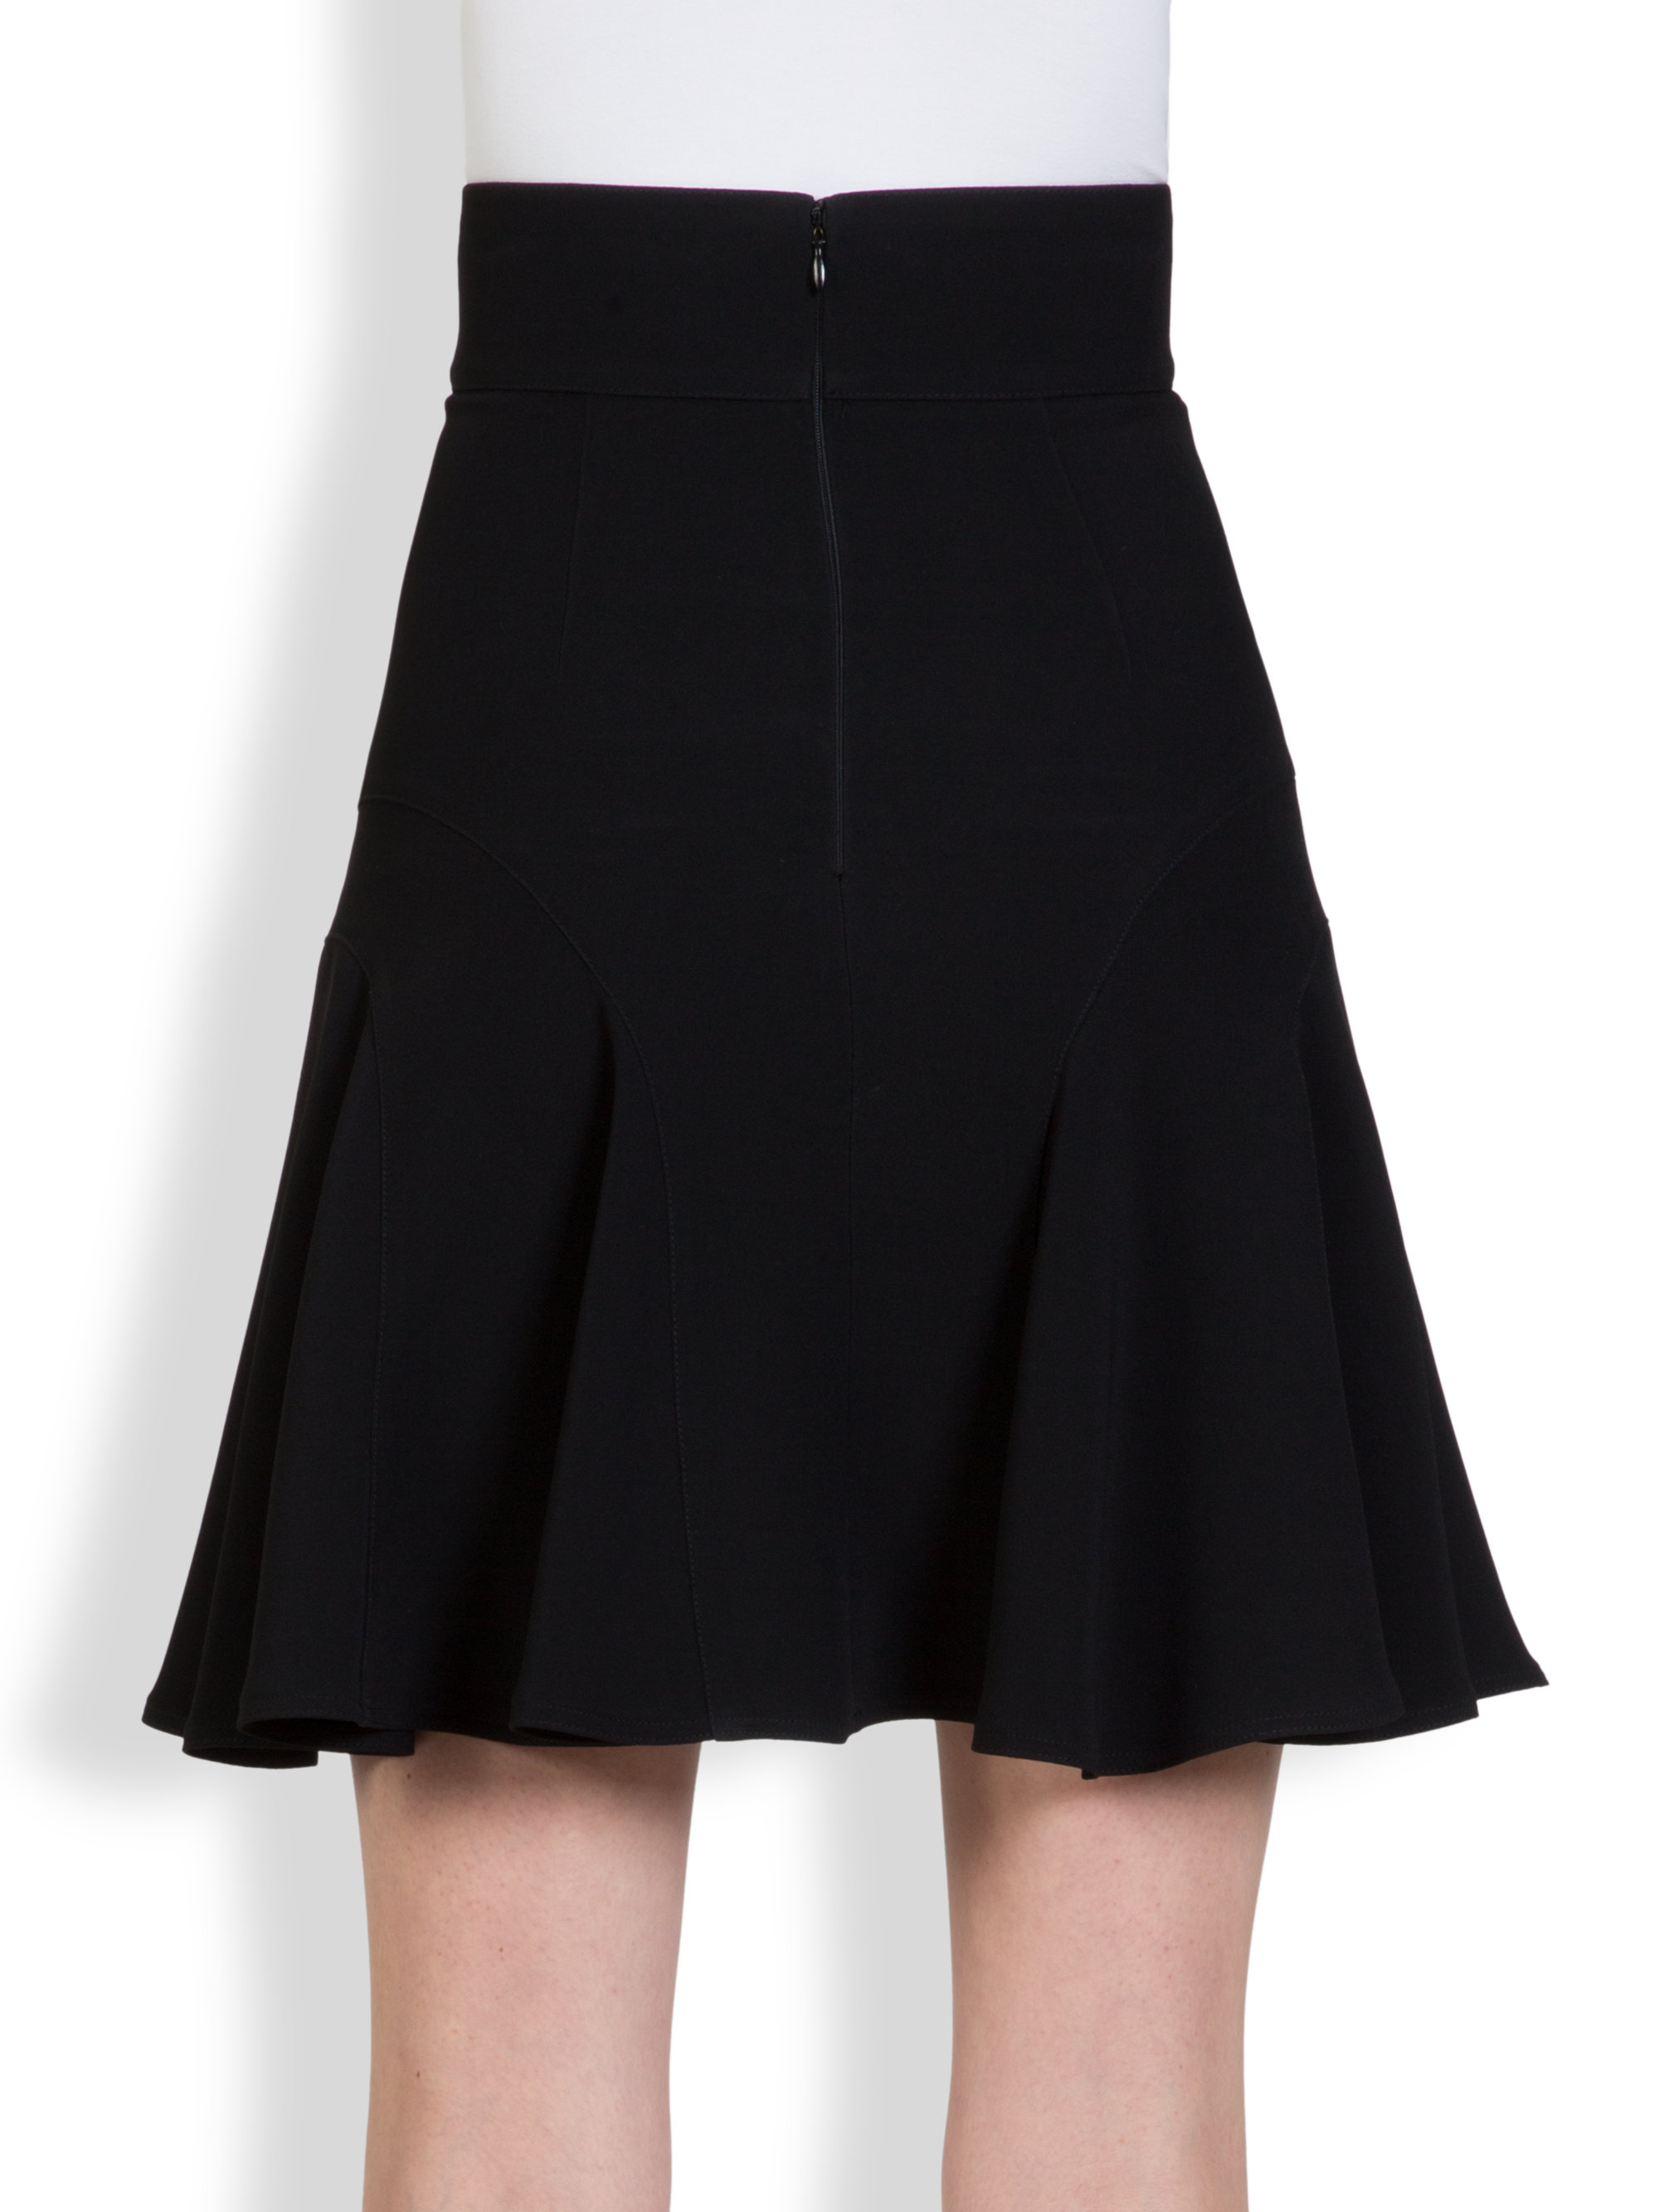 givenchy crepe tulip skirt in black lyst